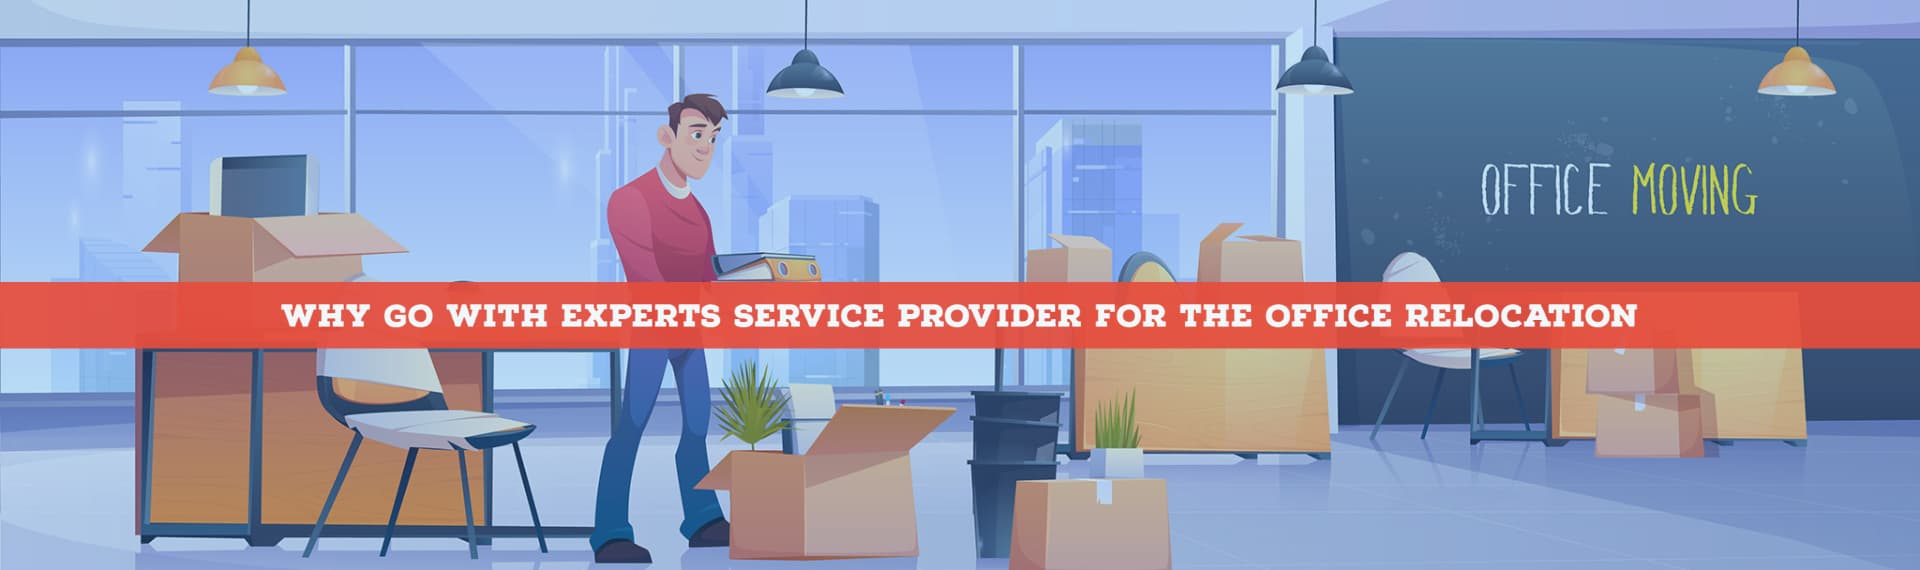 Why Go With Experts Service Provider For The Office Relocation